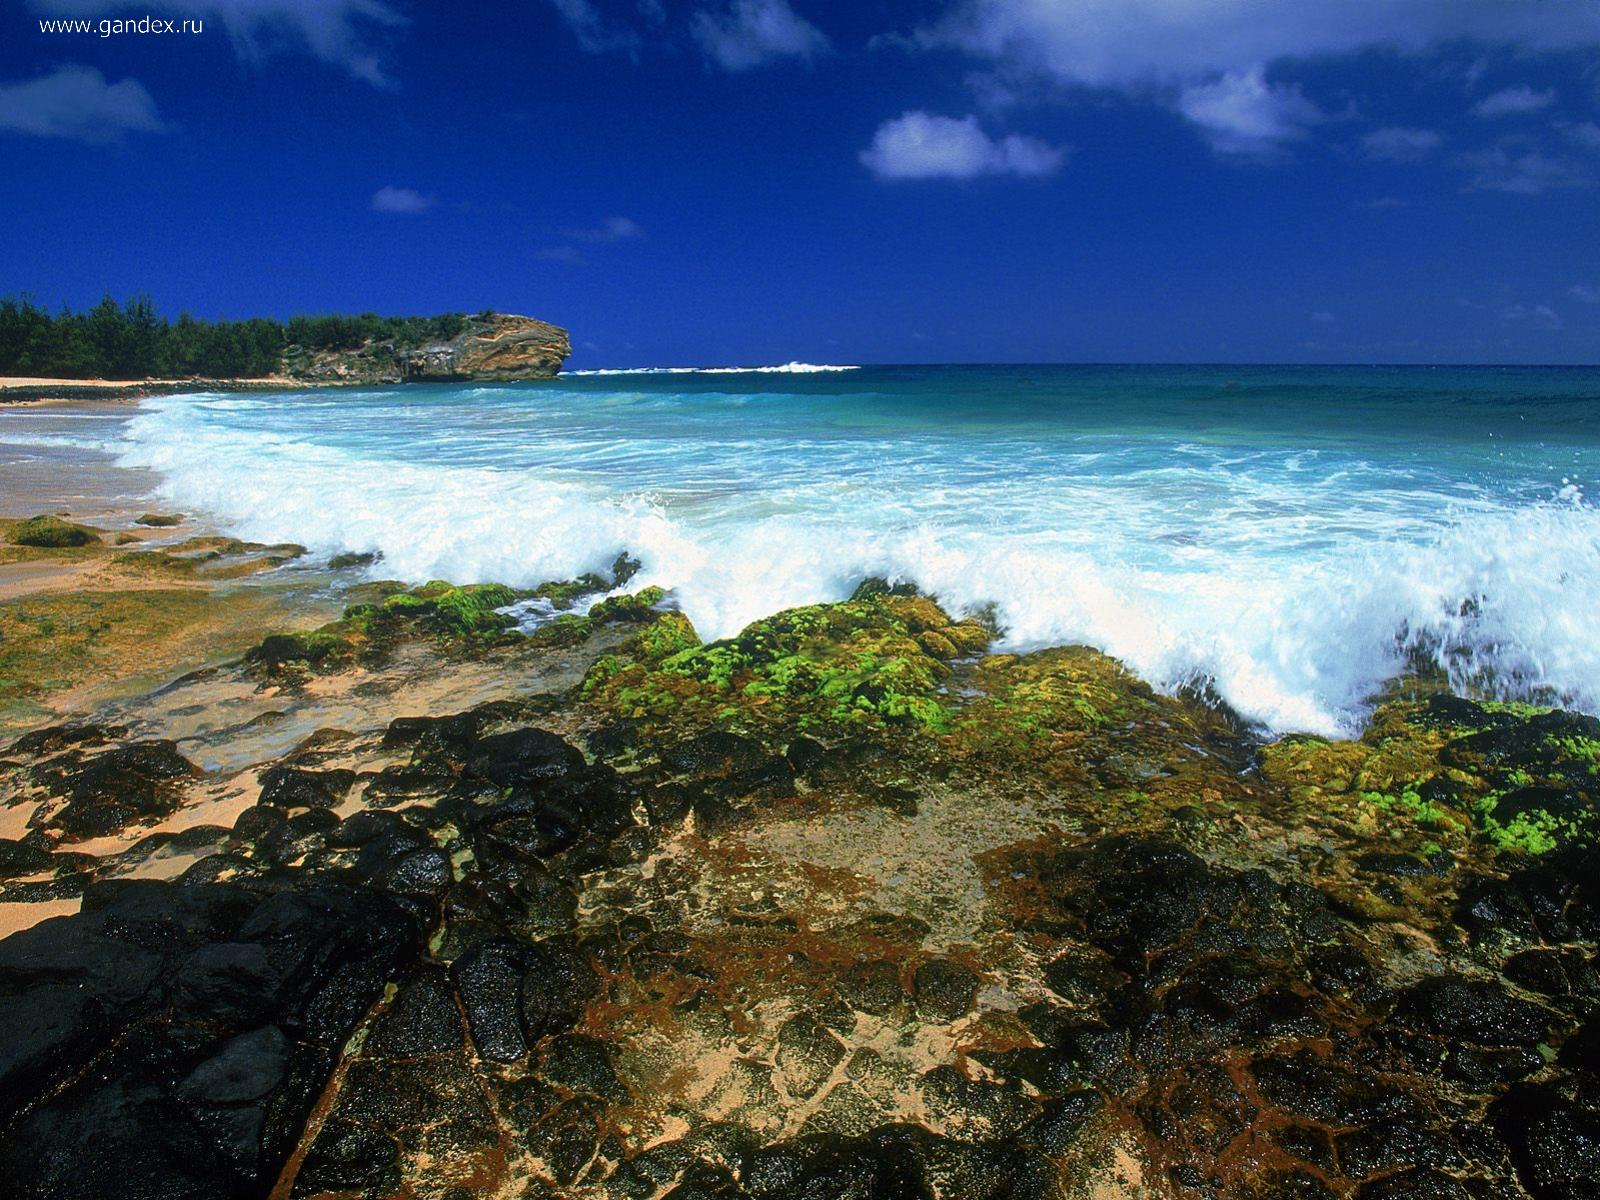 Sea beach in Hawaii photo wallpaper for your desktop.